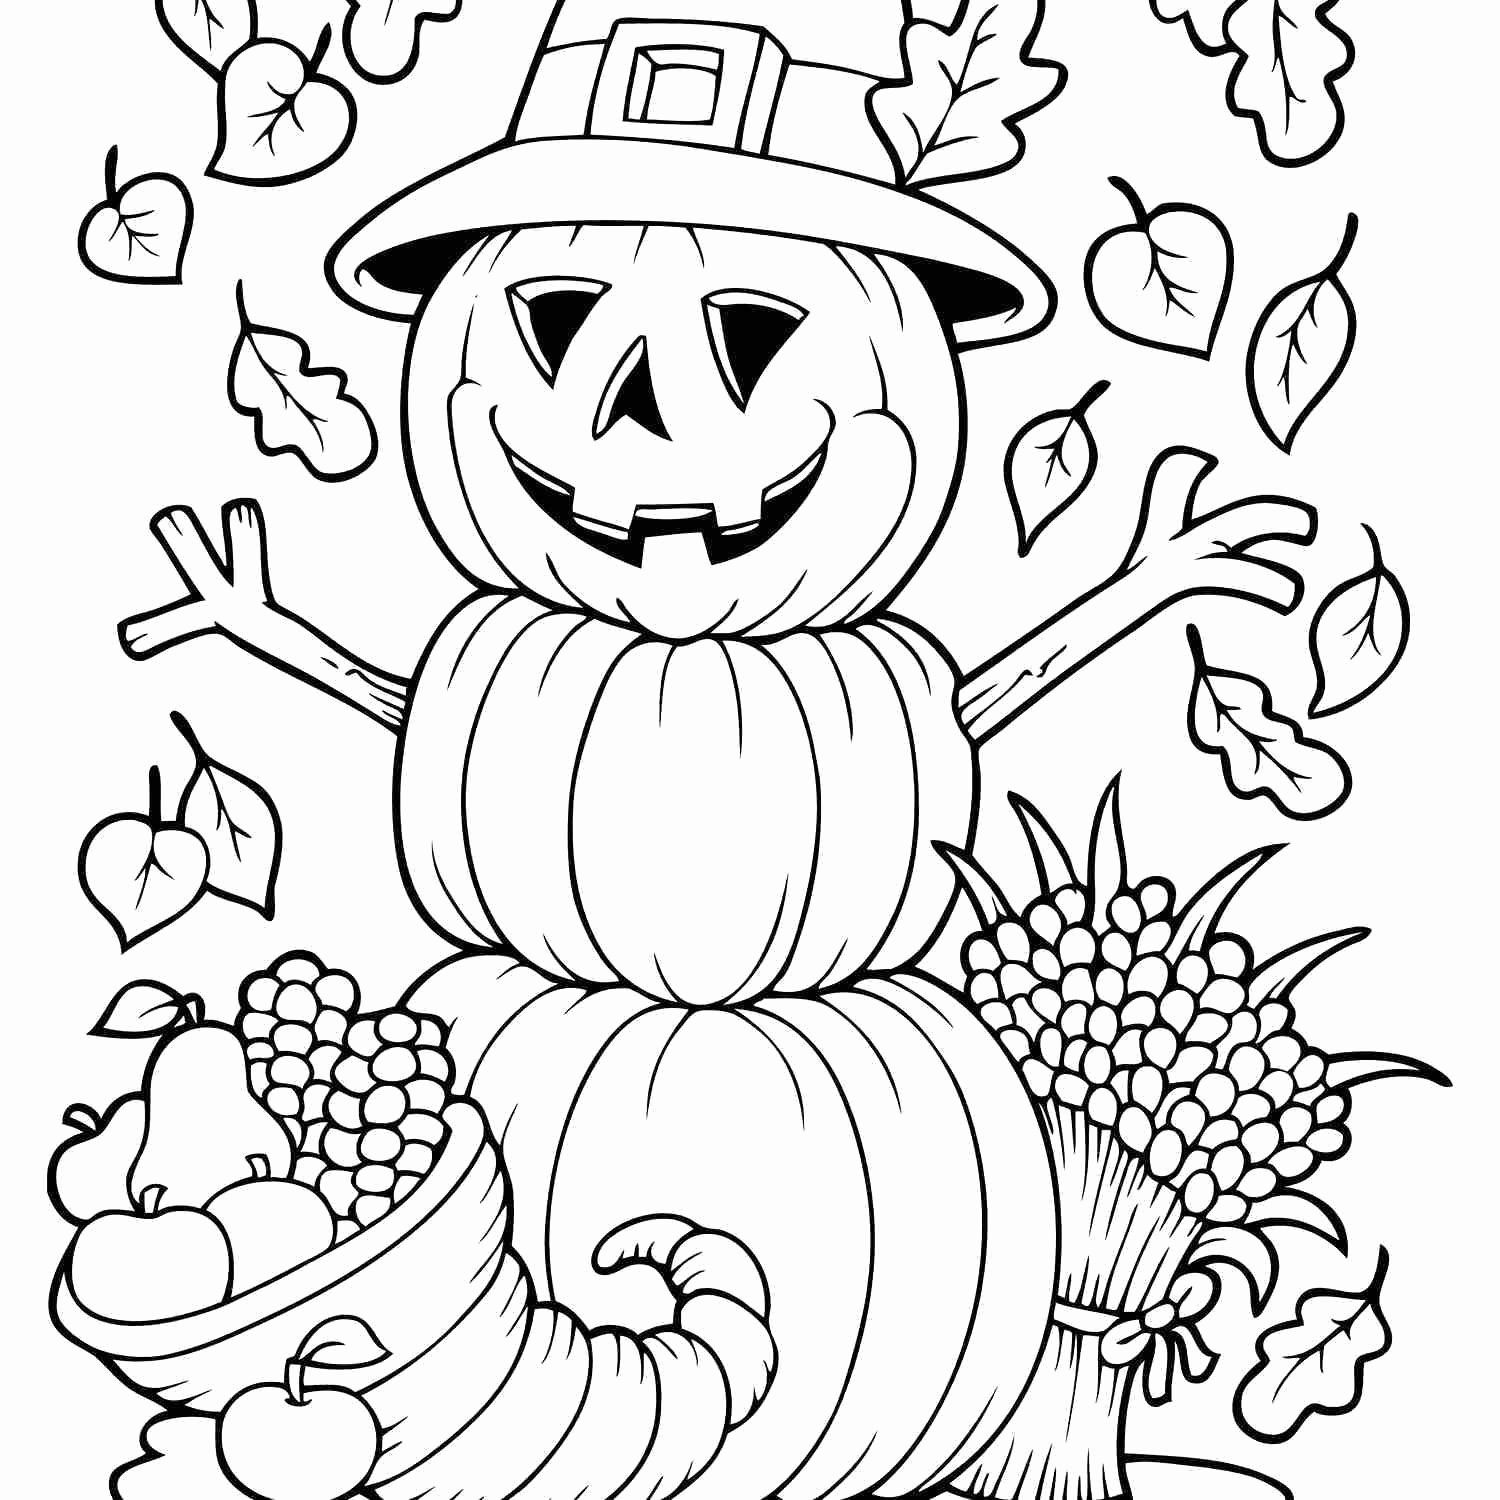 Free Fall Coloring Pages Preschool di 2020 | Gambar